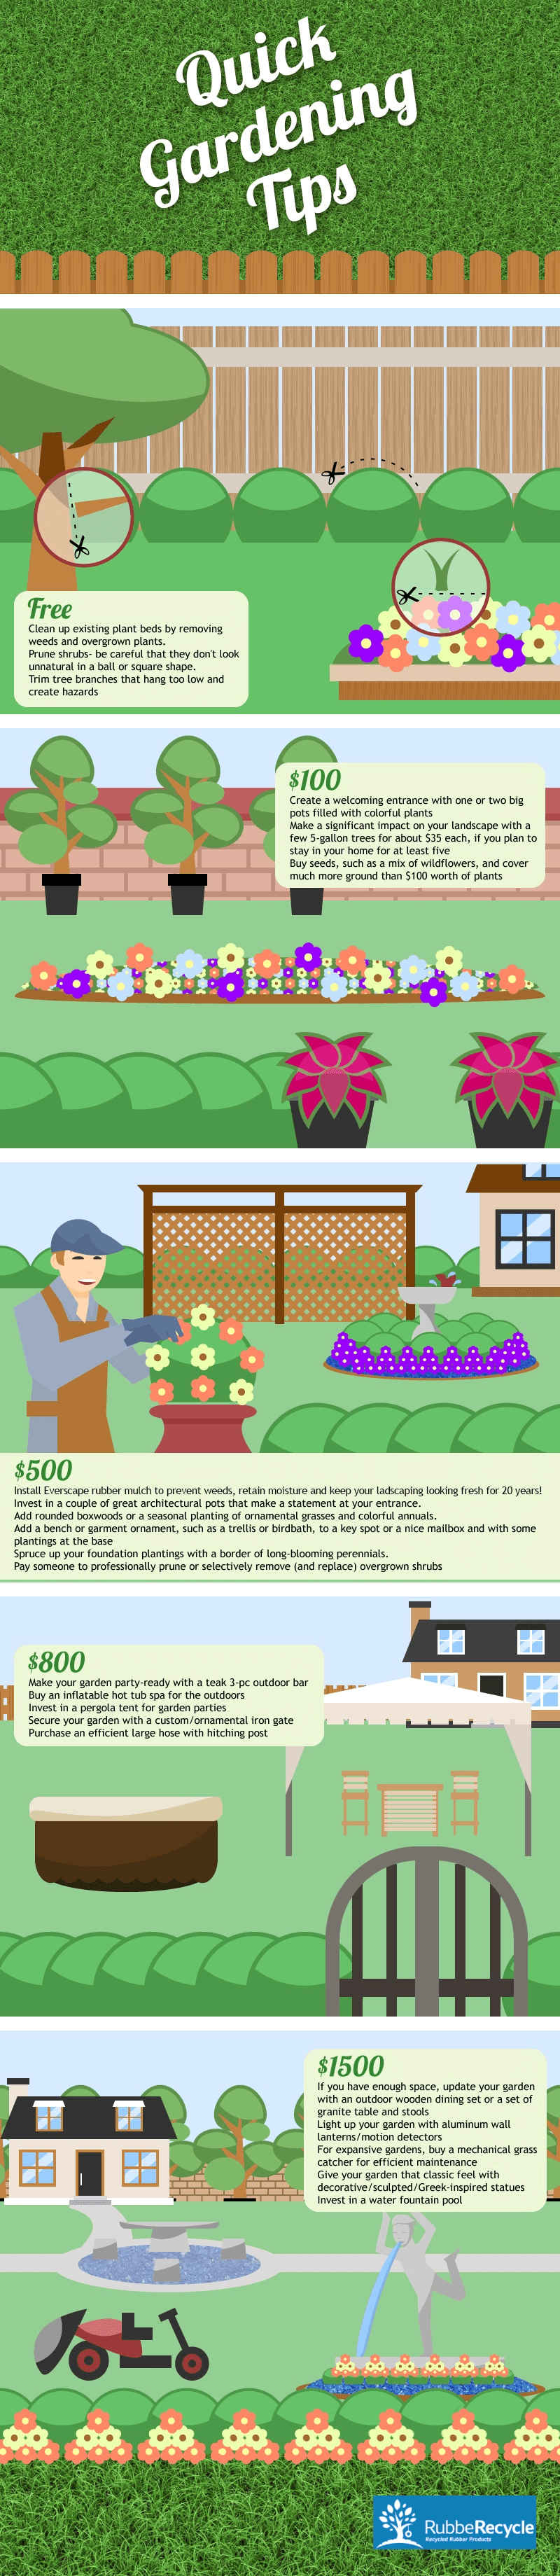 Quick and easy gardening tips home garden joy for Gardening tips